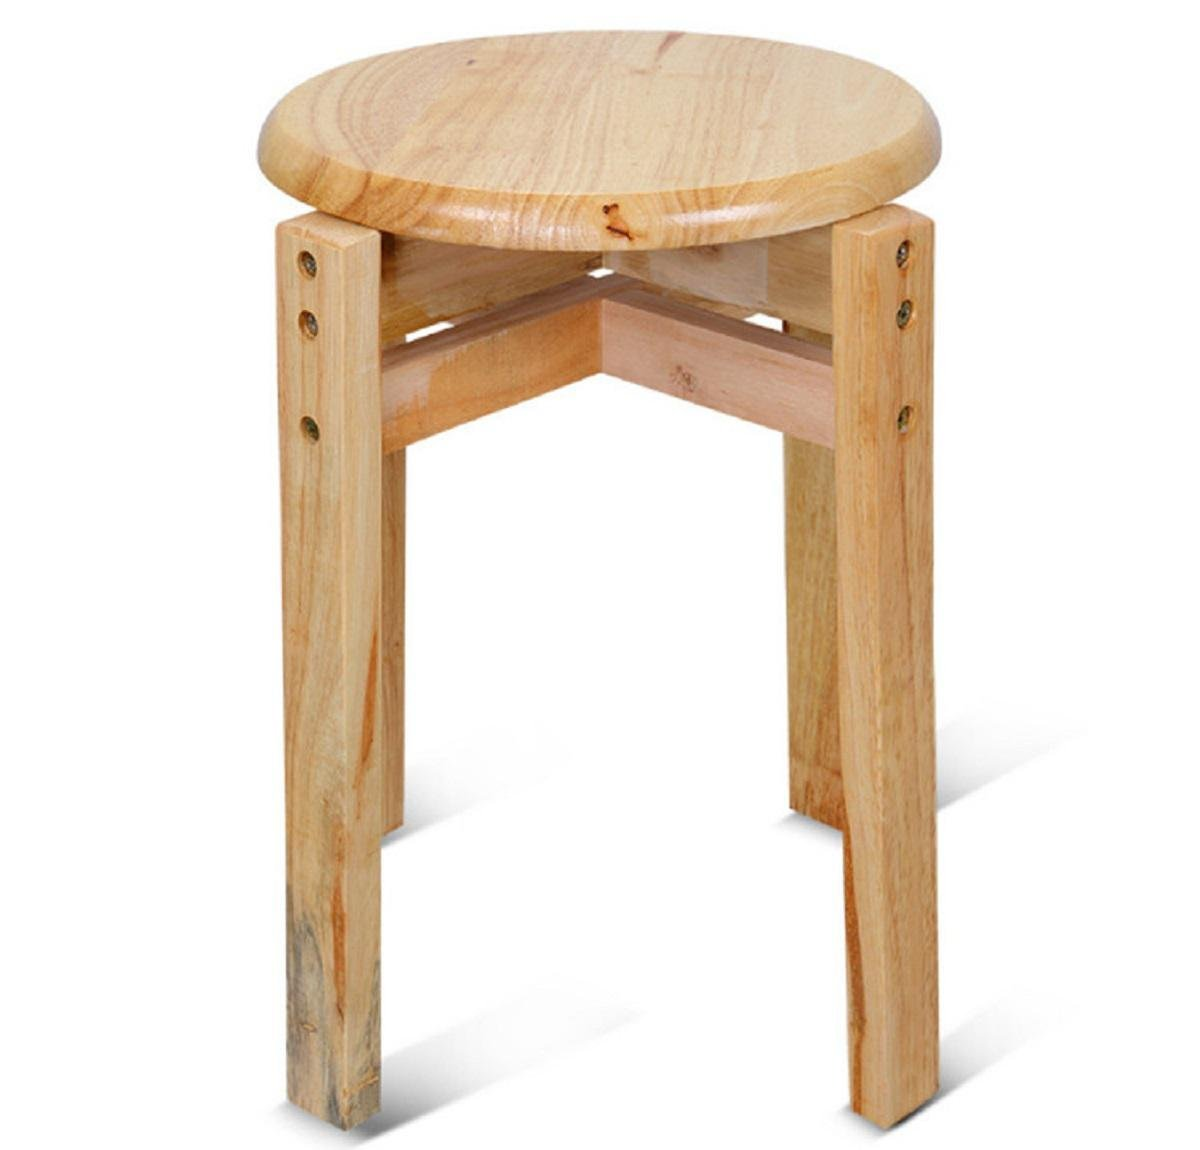 Children Furniture Children Chairs Reinforced Oak Solid Wood Home Stool Small Bench Stool Manual Small Wooden Bench Stool